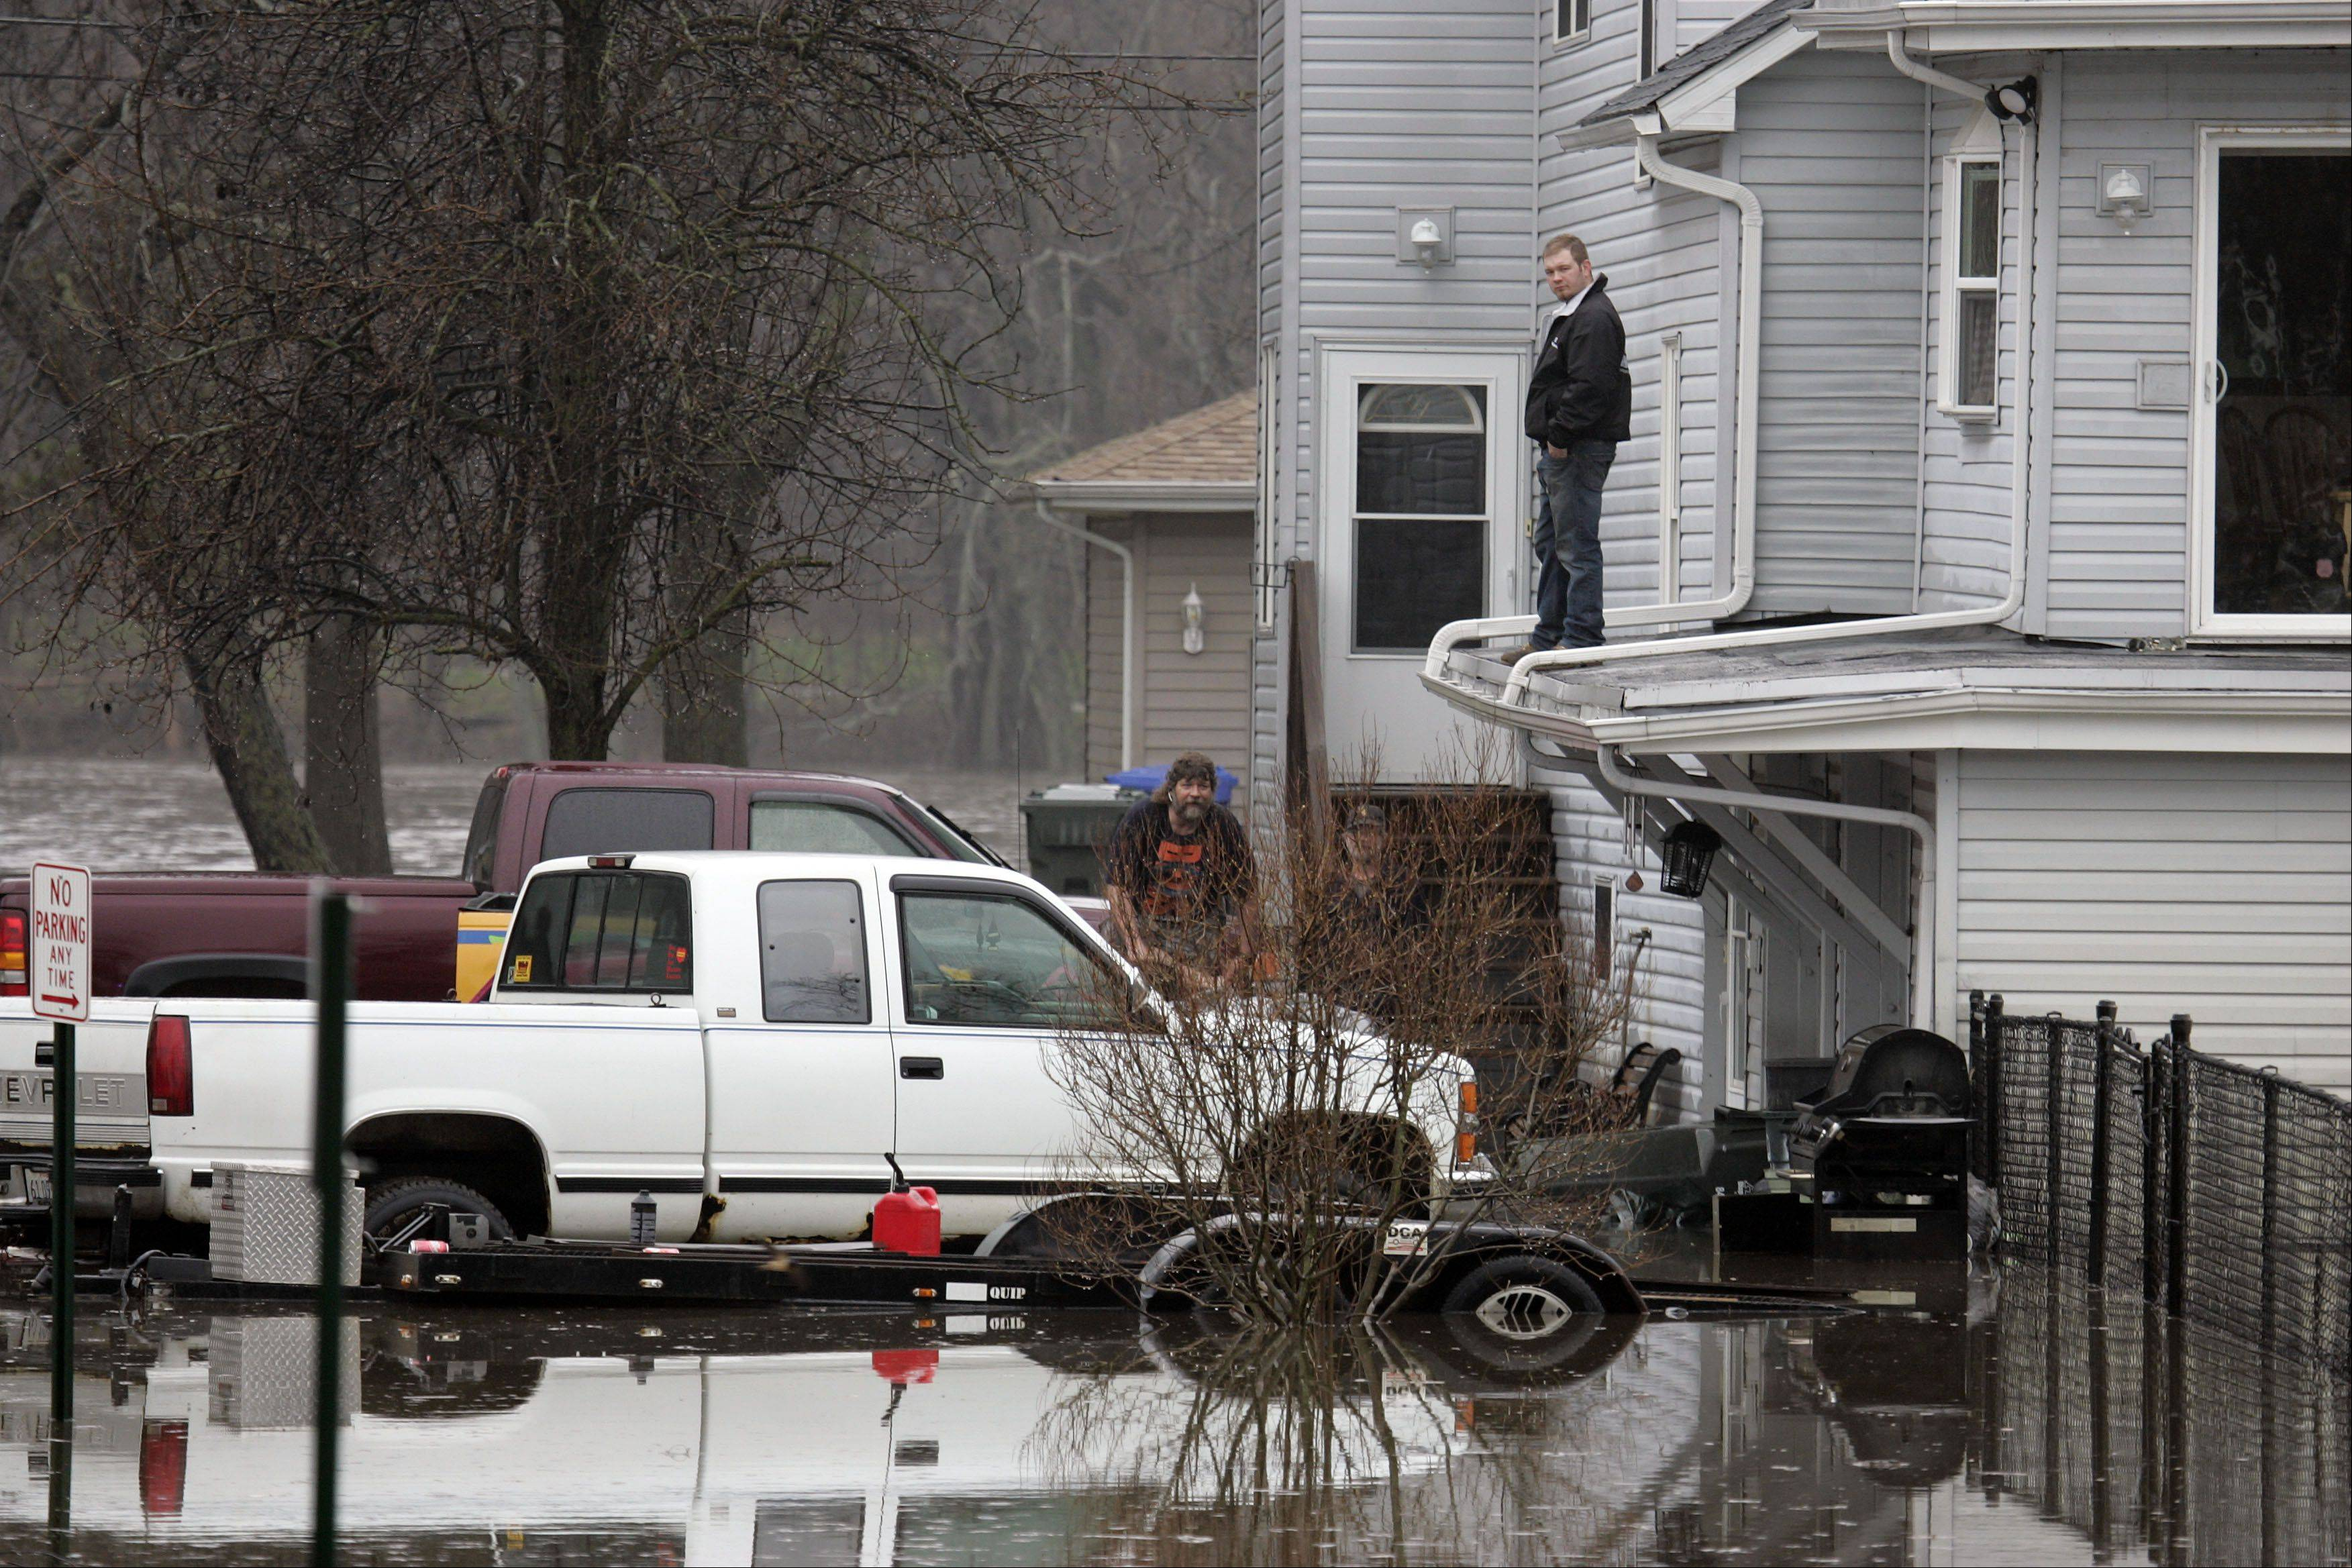 Mike Brancecum of South Elgin, behind truck, and an unidentified man on the roof watch as water attempts to invade his home on East Spring Ave in South Elgin Thursday.